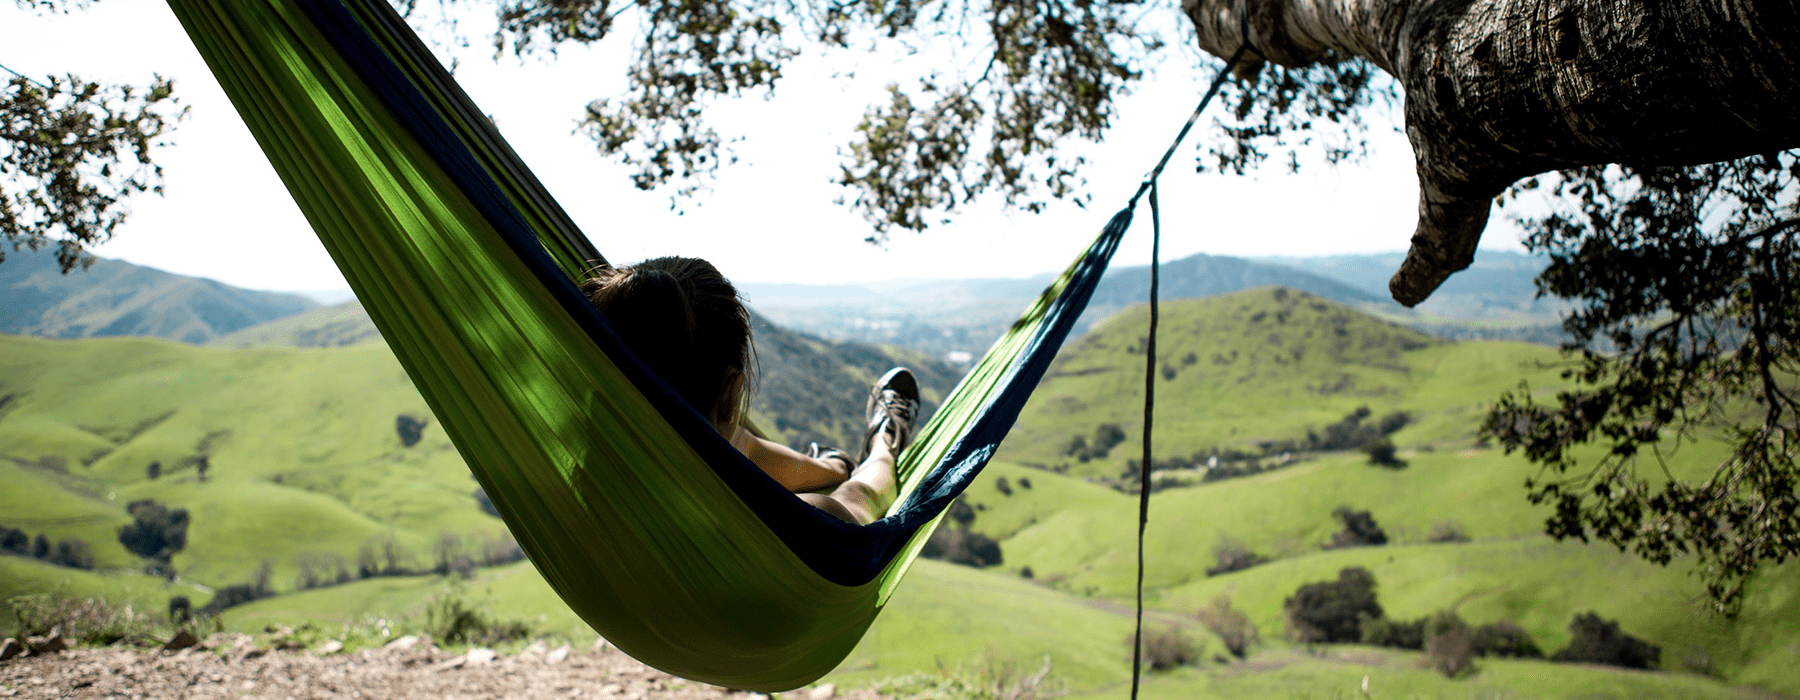 lifestyle image of a person relaxing in a hammock between two trees outdoors